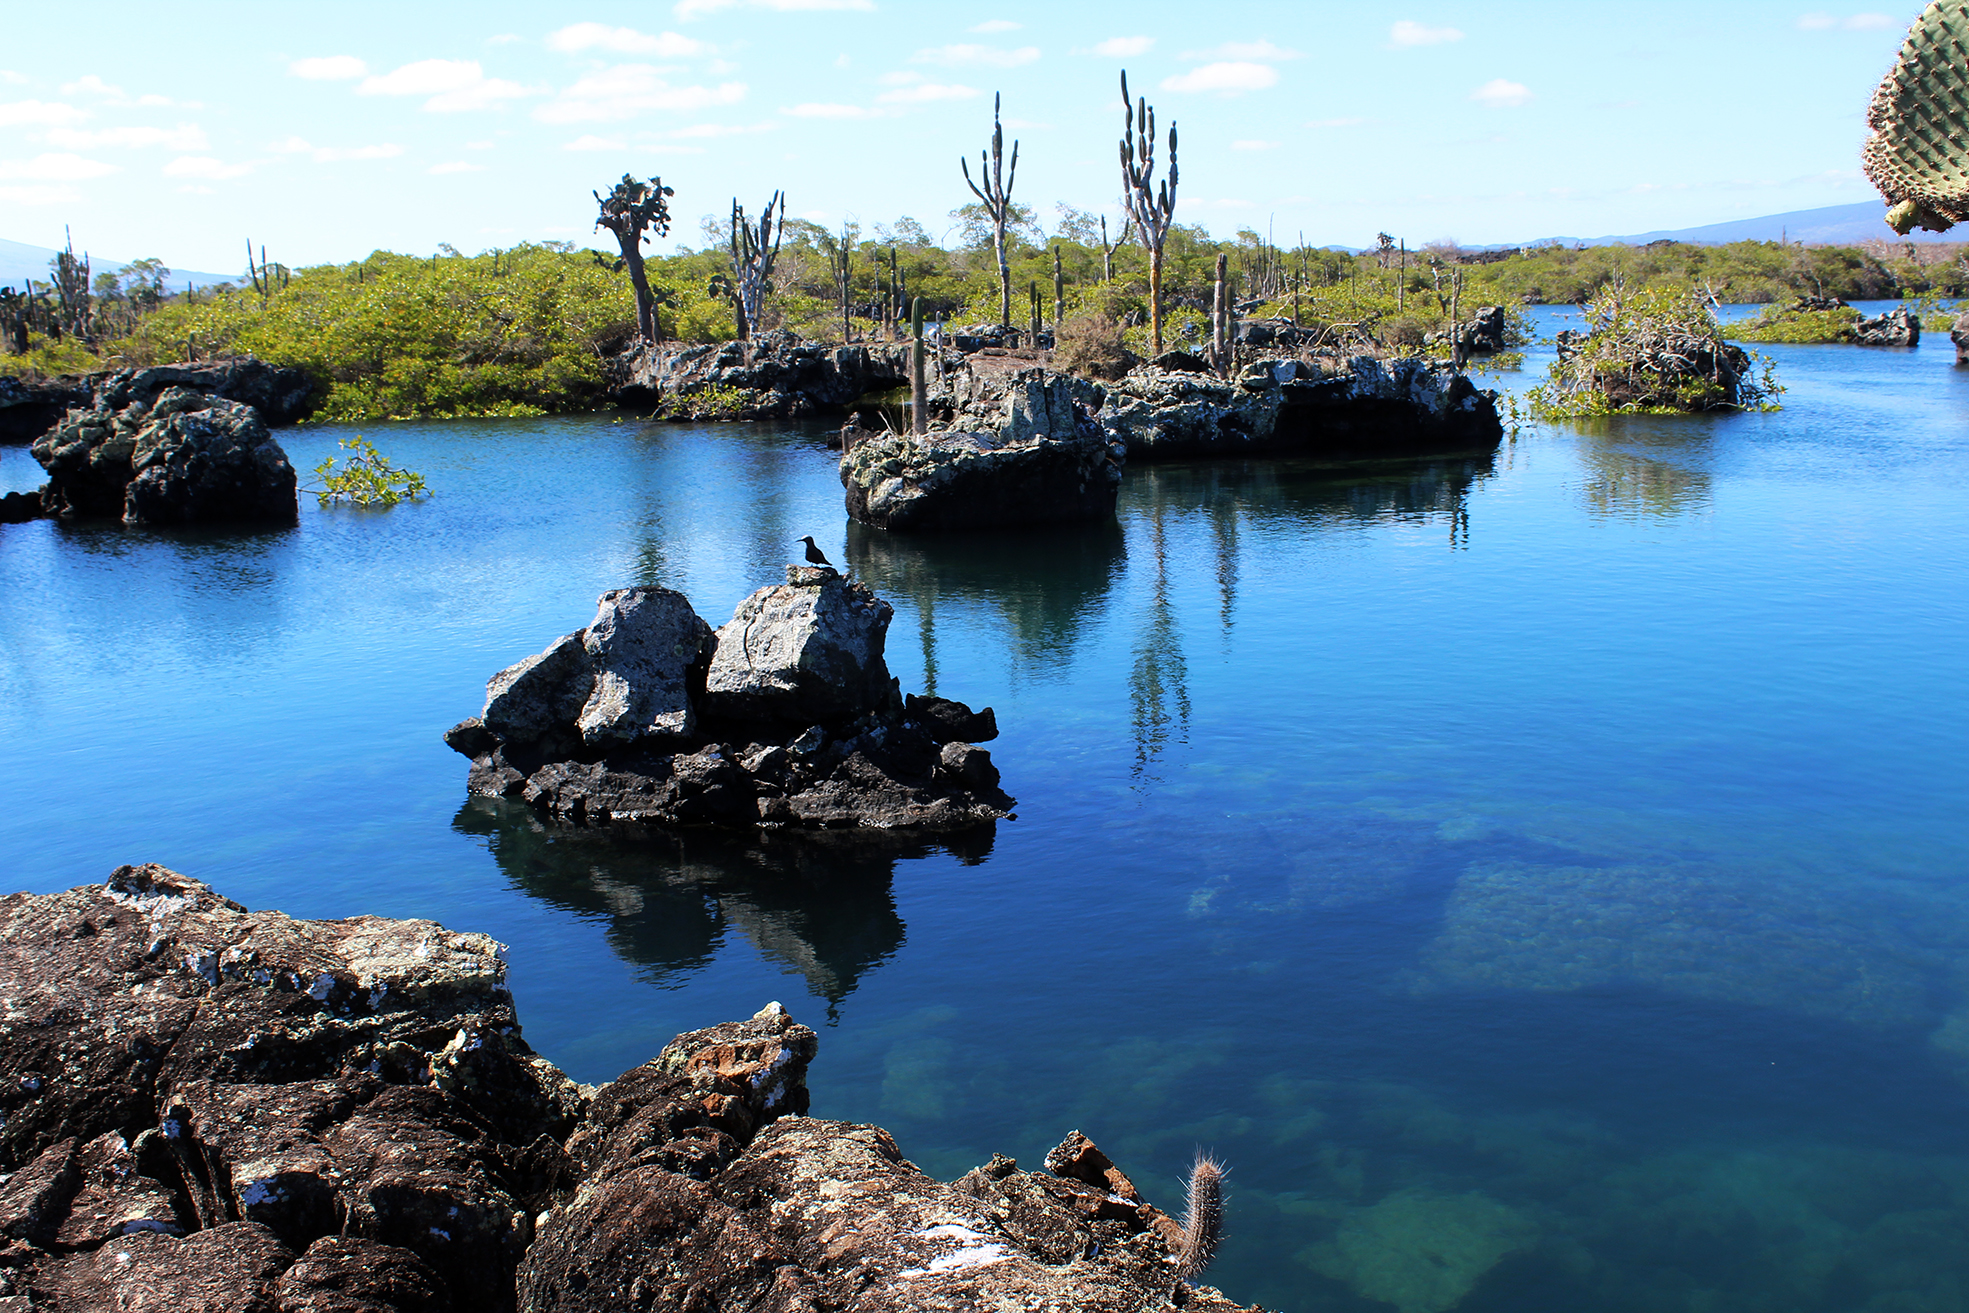 Full travel blog guide to Los Tuneles, things to do on Isla Isabela, Galapagos Islands. Budget travel galapagos islands.